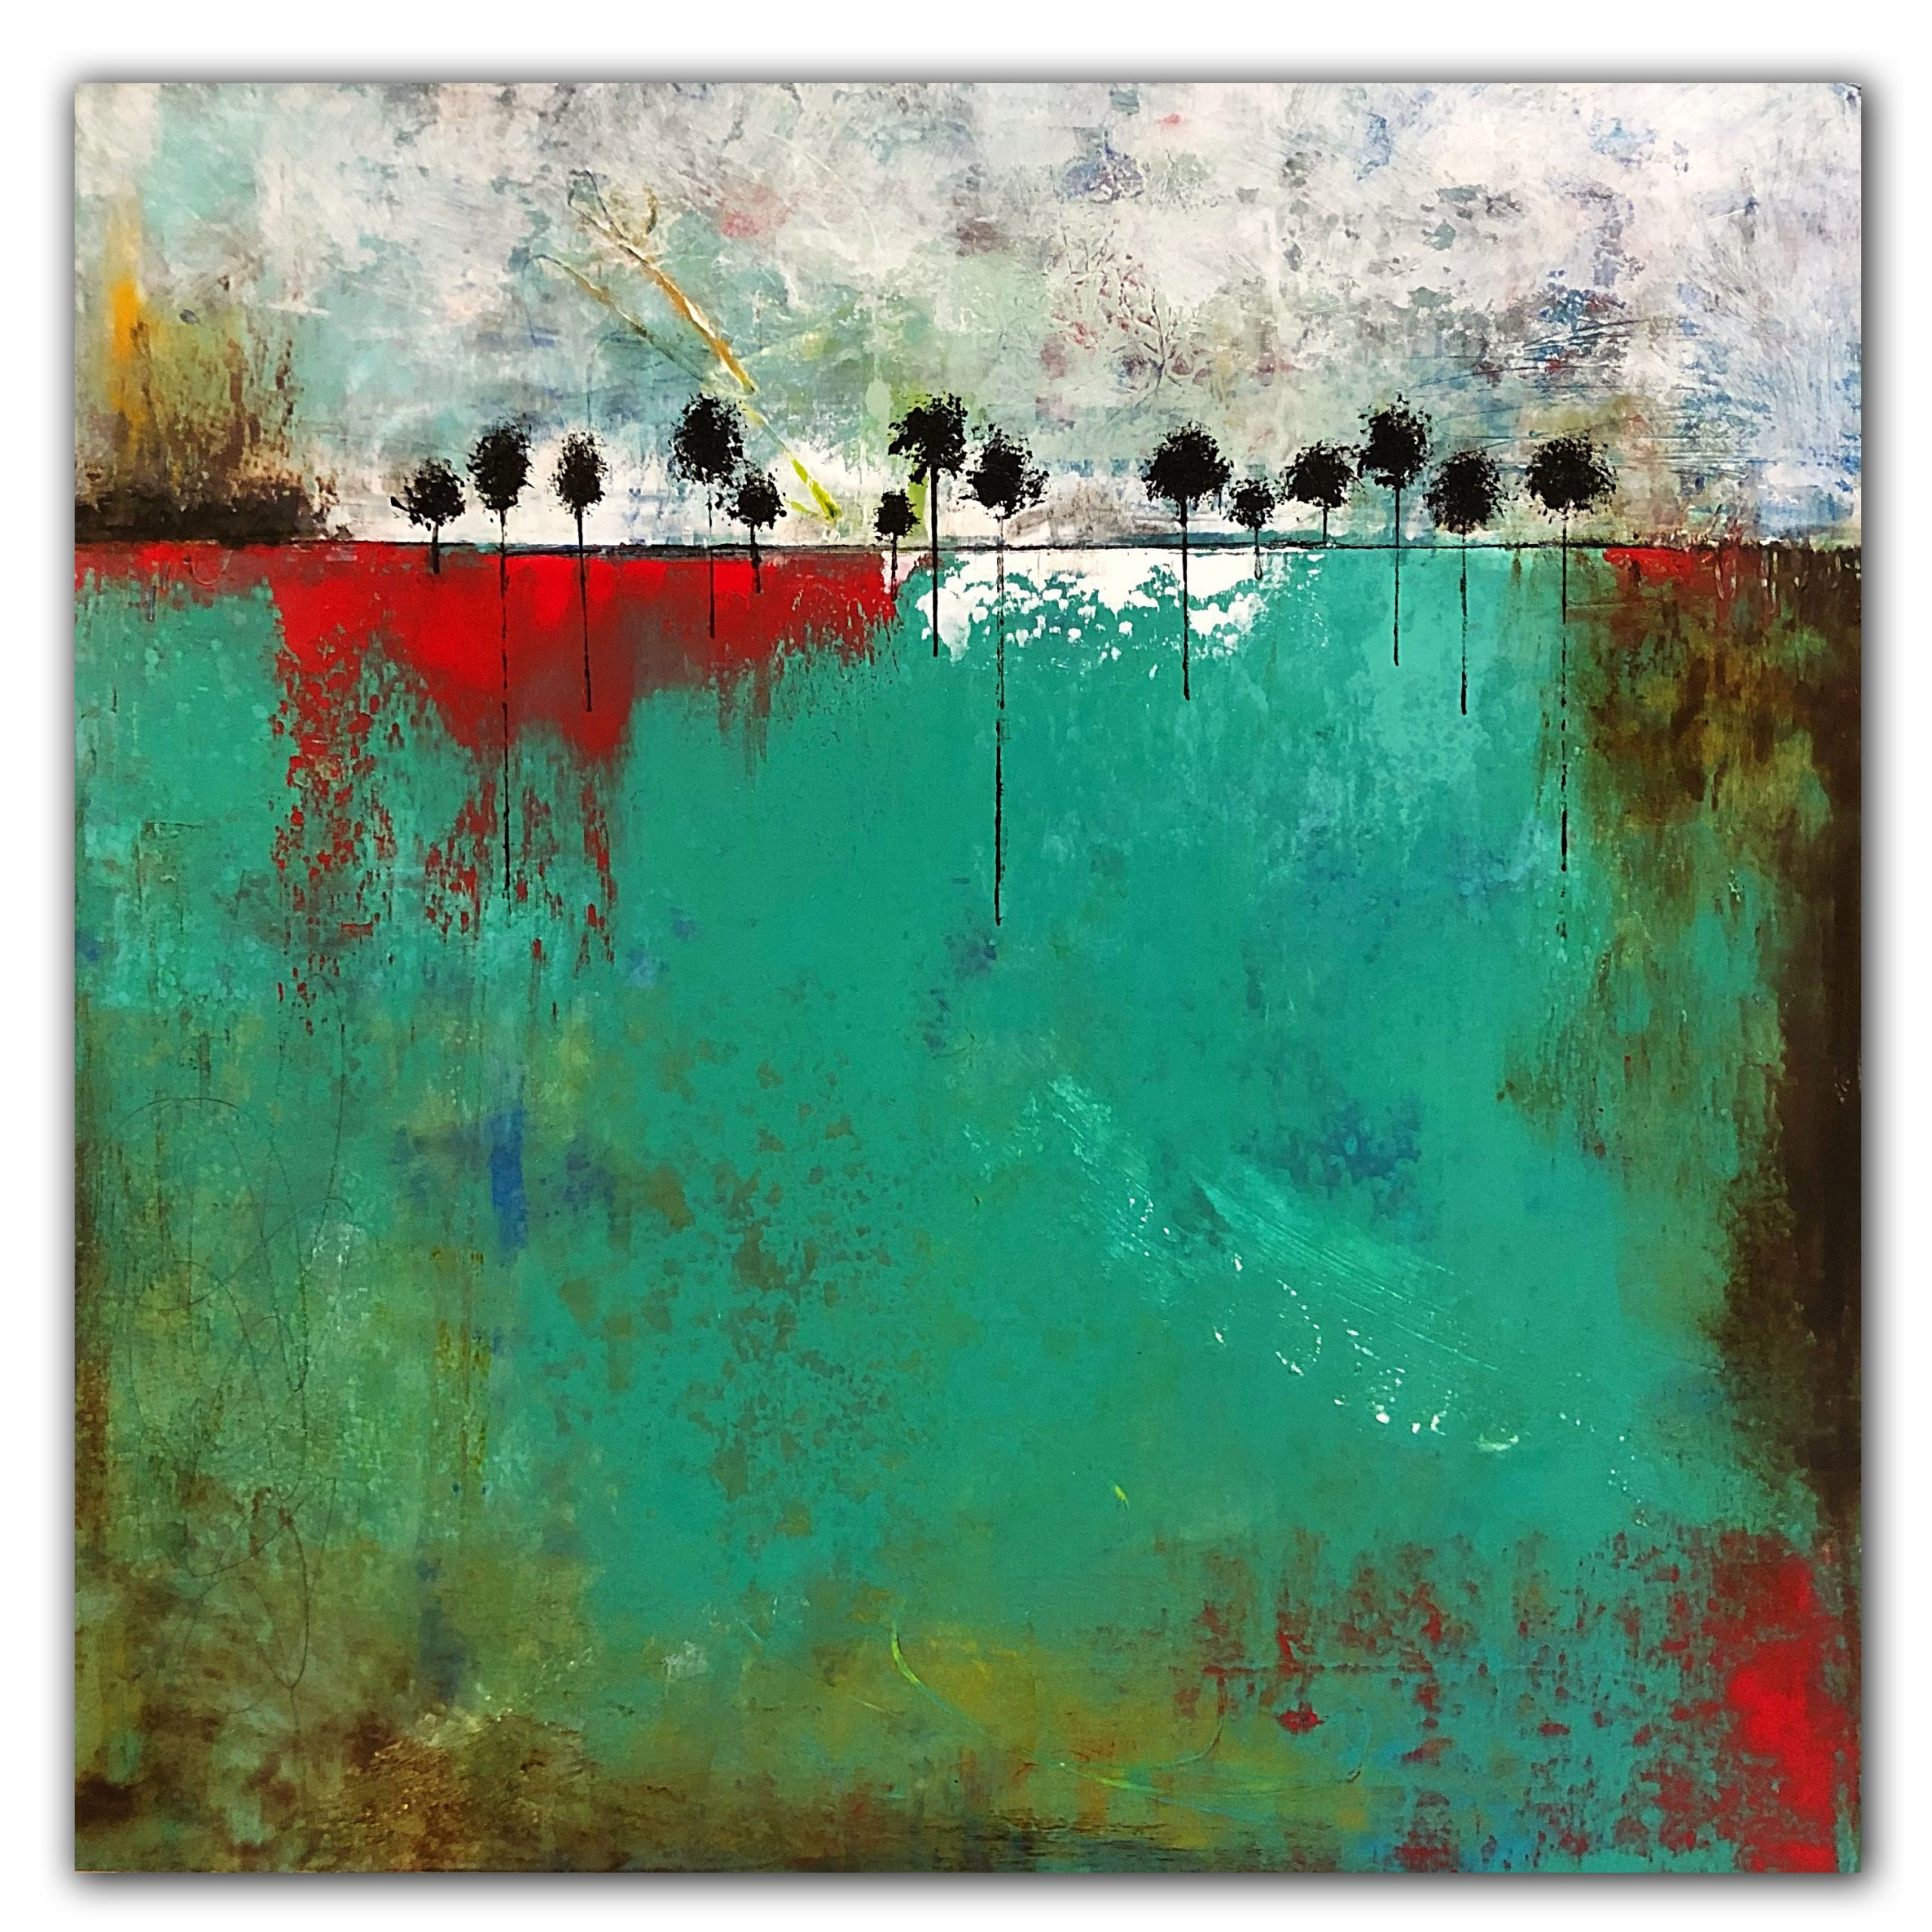 Turquoise and green landscape abstract oil and cold wax painting